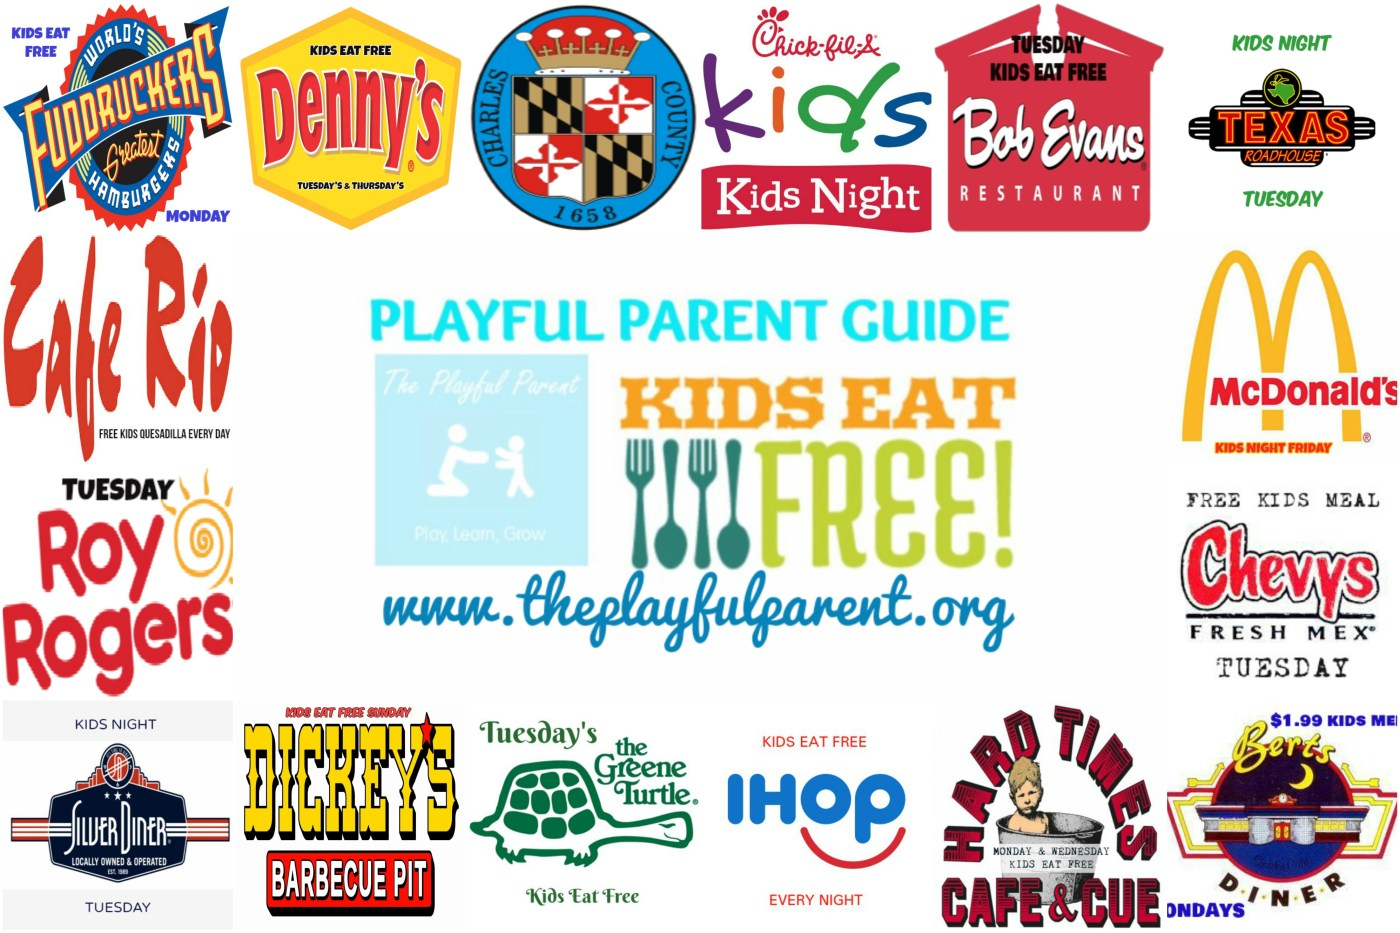 Maryland Restaurants where kids eat free or cheap. Find out where to eat each night of the week to save money or have fun at a local kids night.